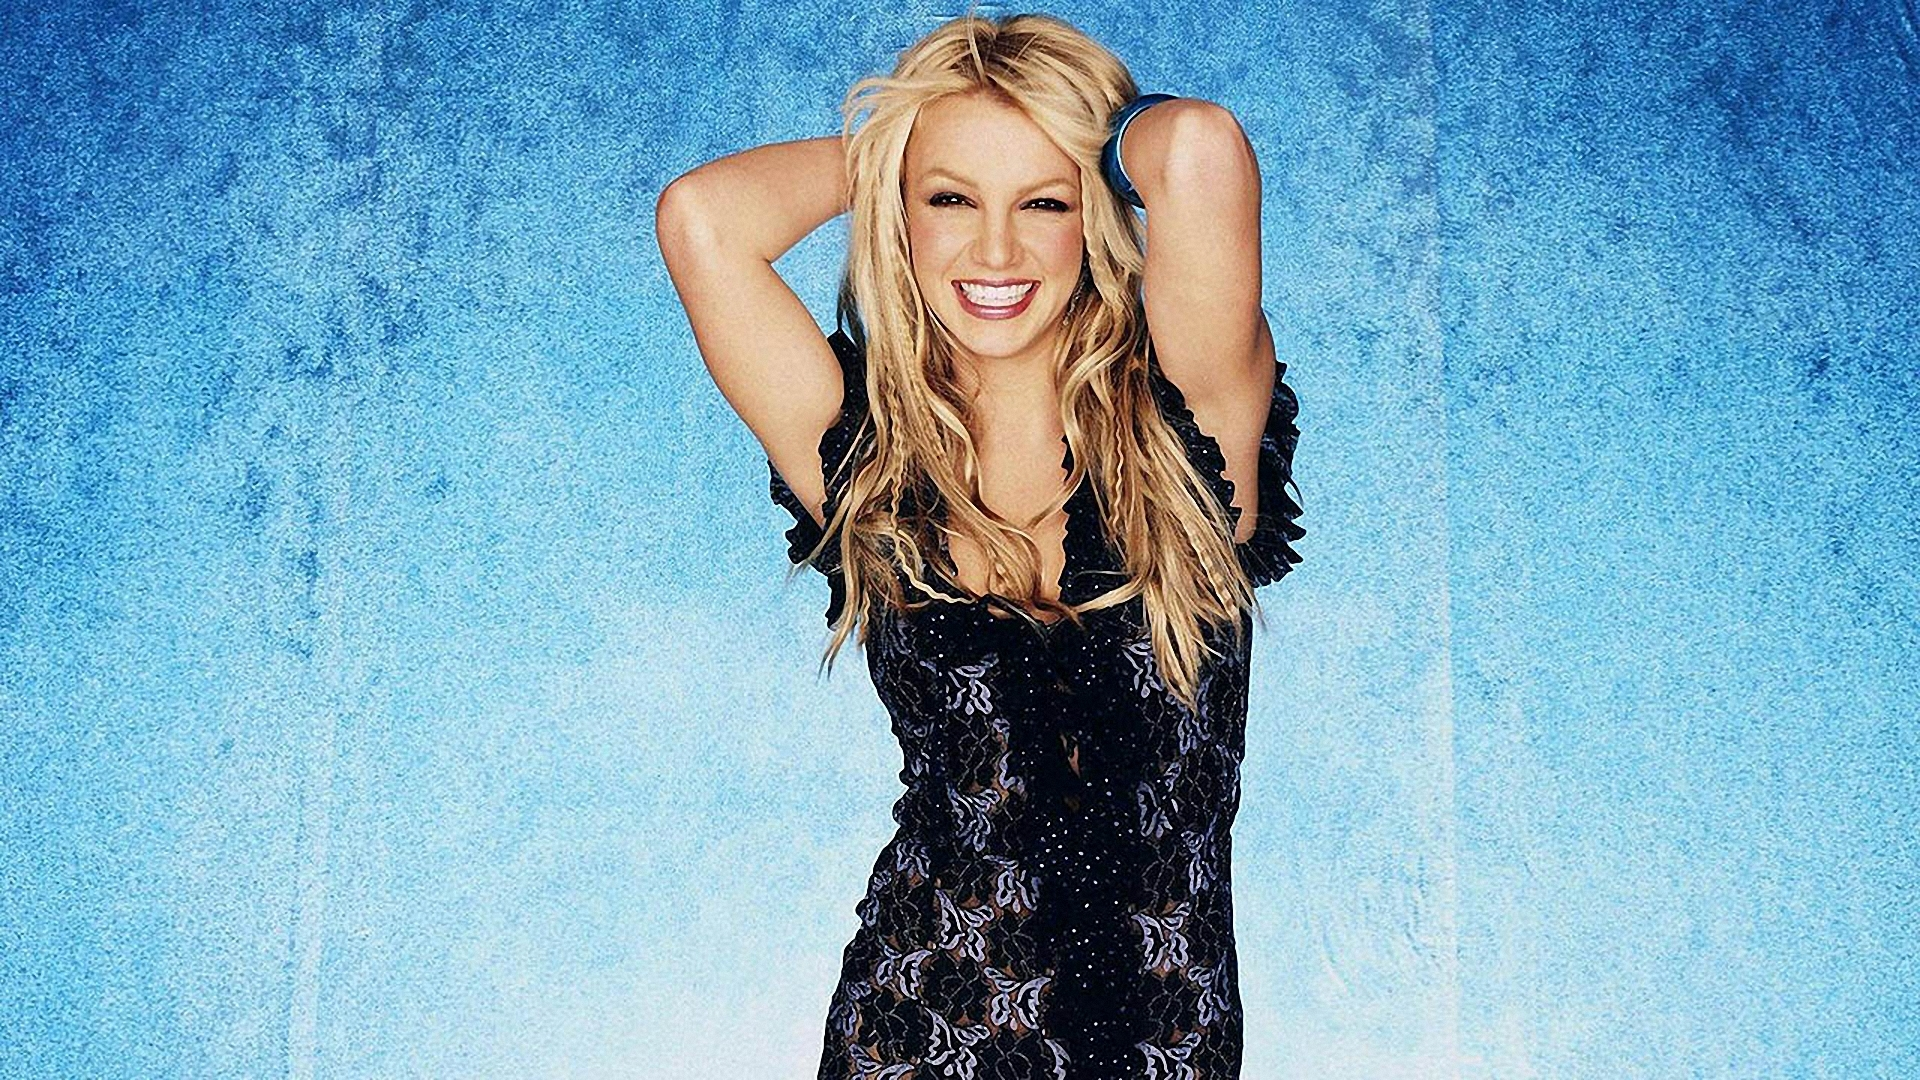 Download Wallpaper 1920x1080 Britney Spears, Smile, Teeth